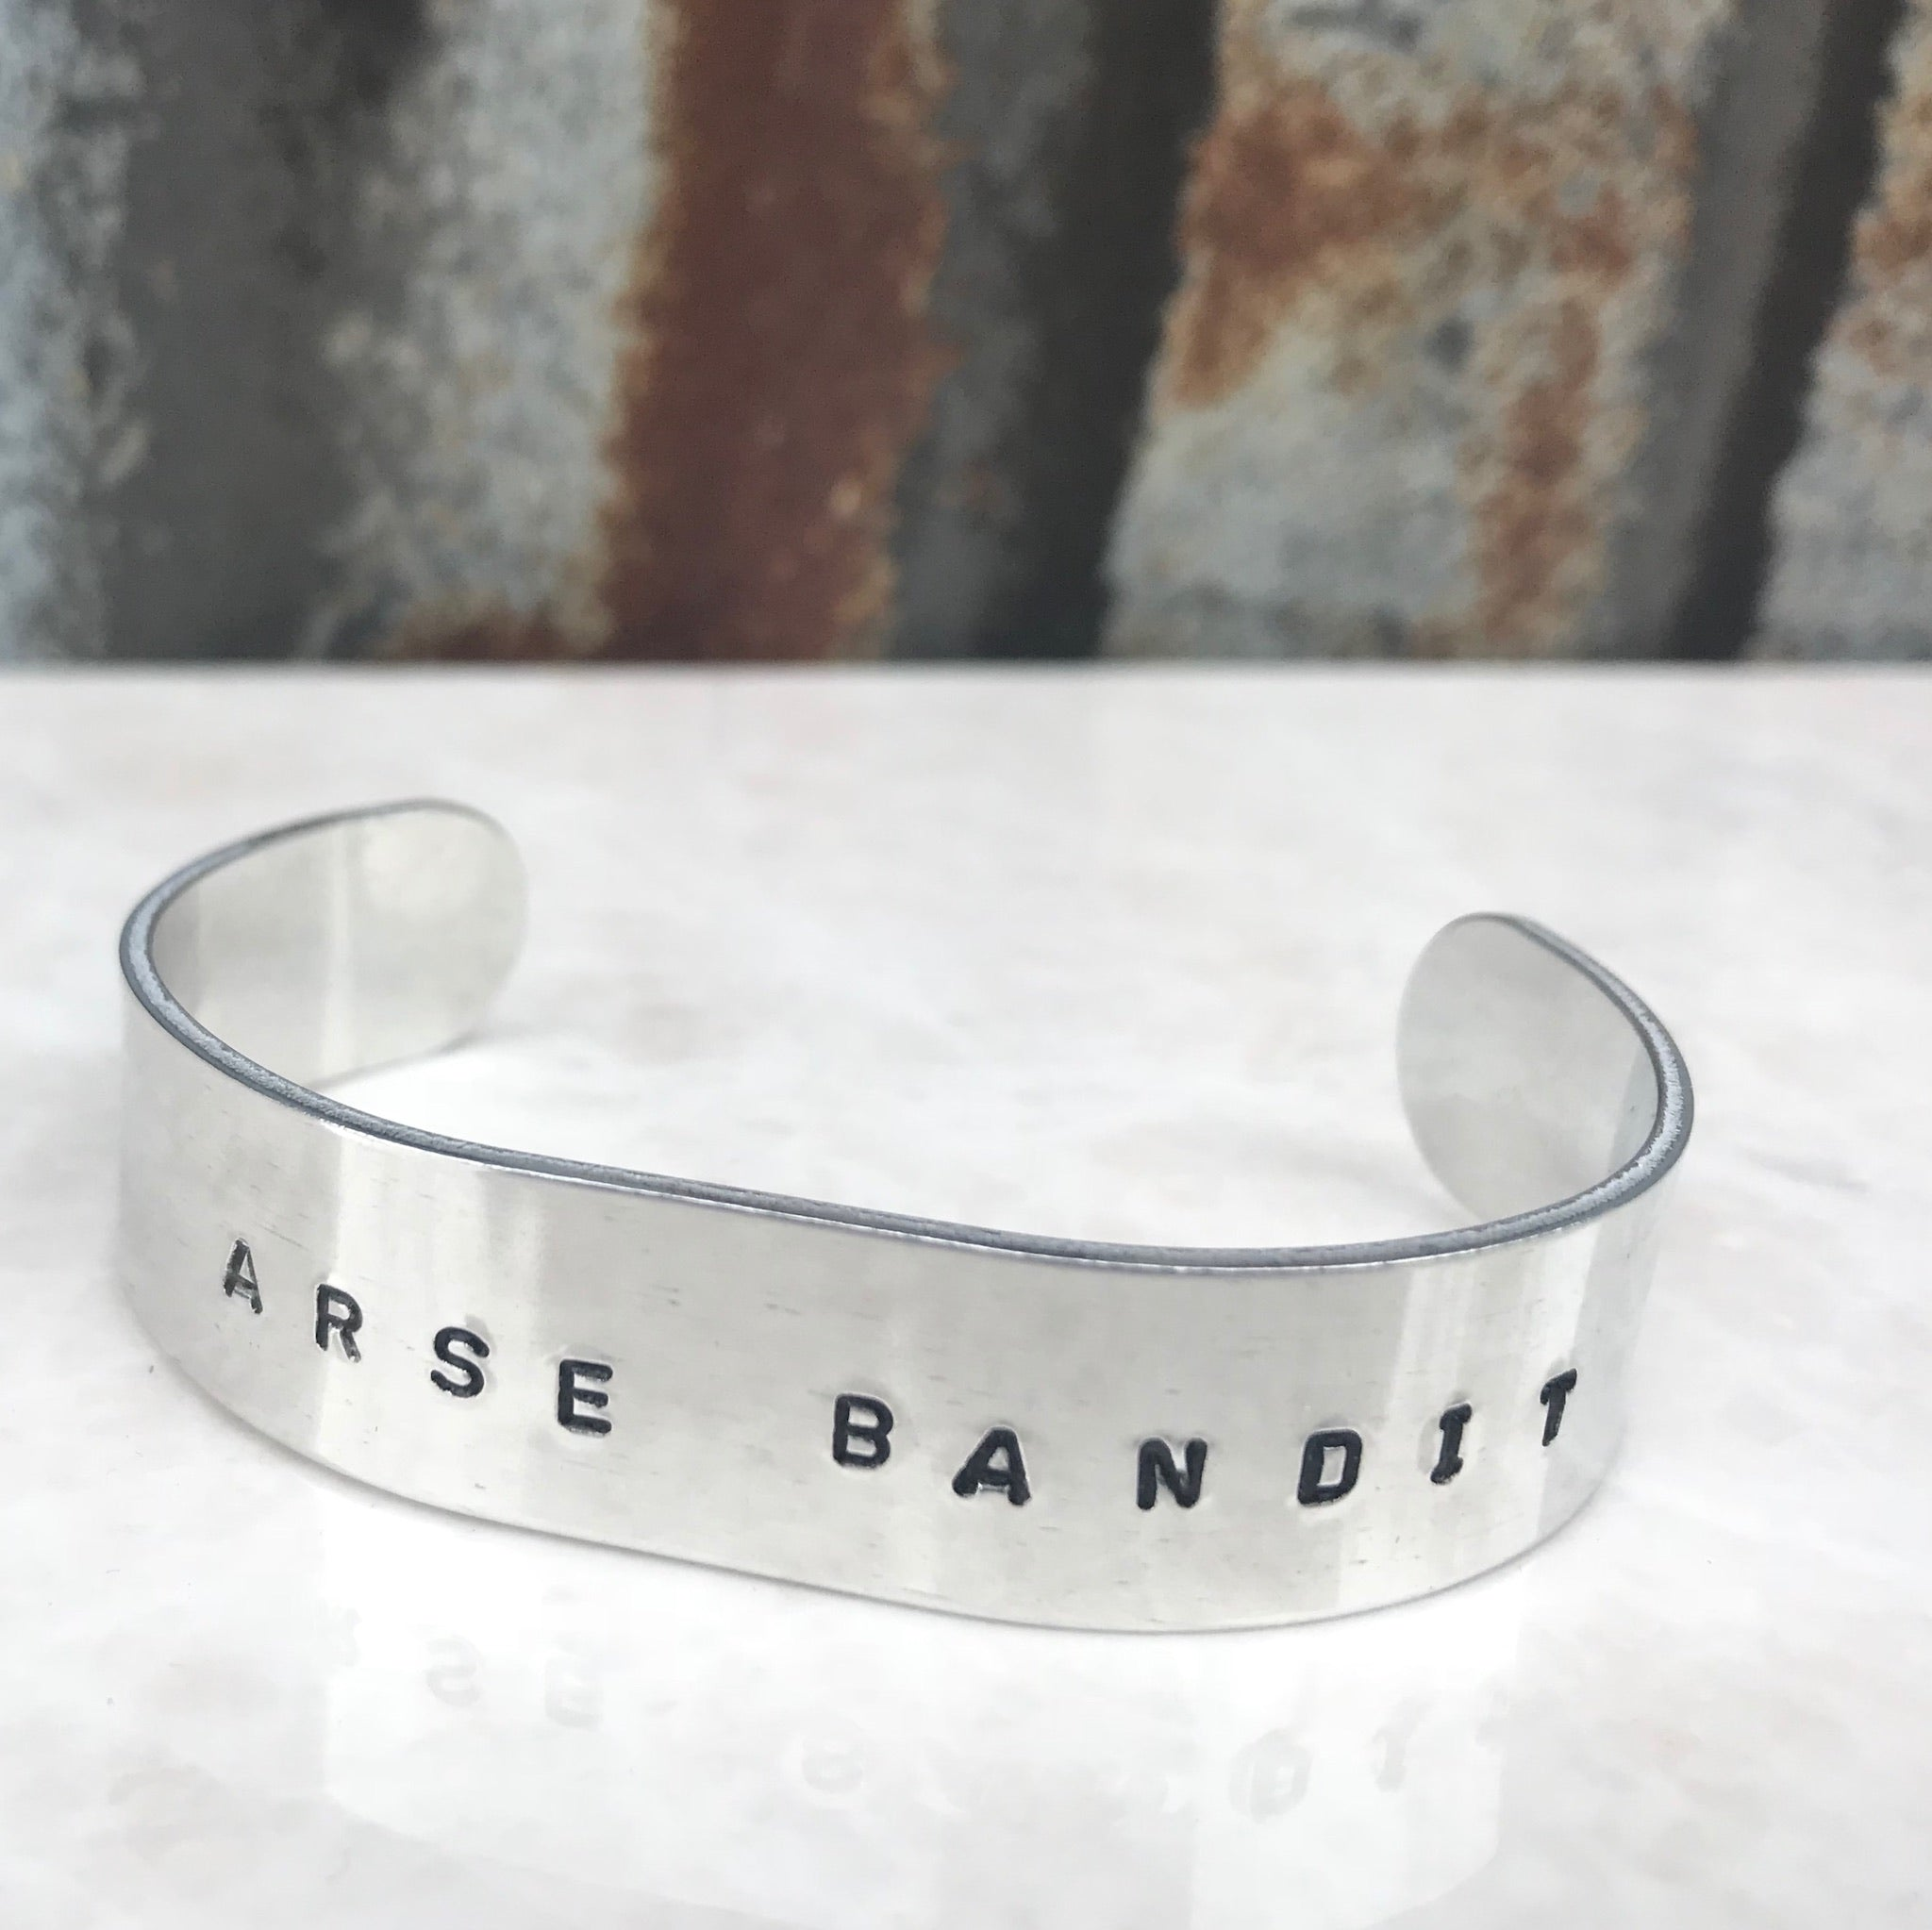 Arse Bandit Bangle